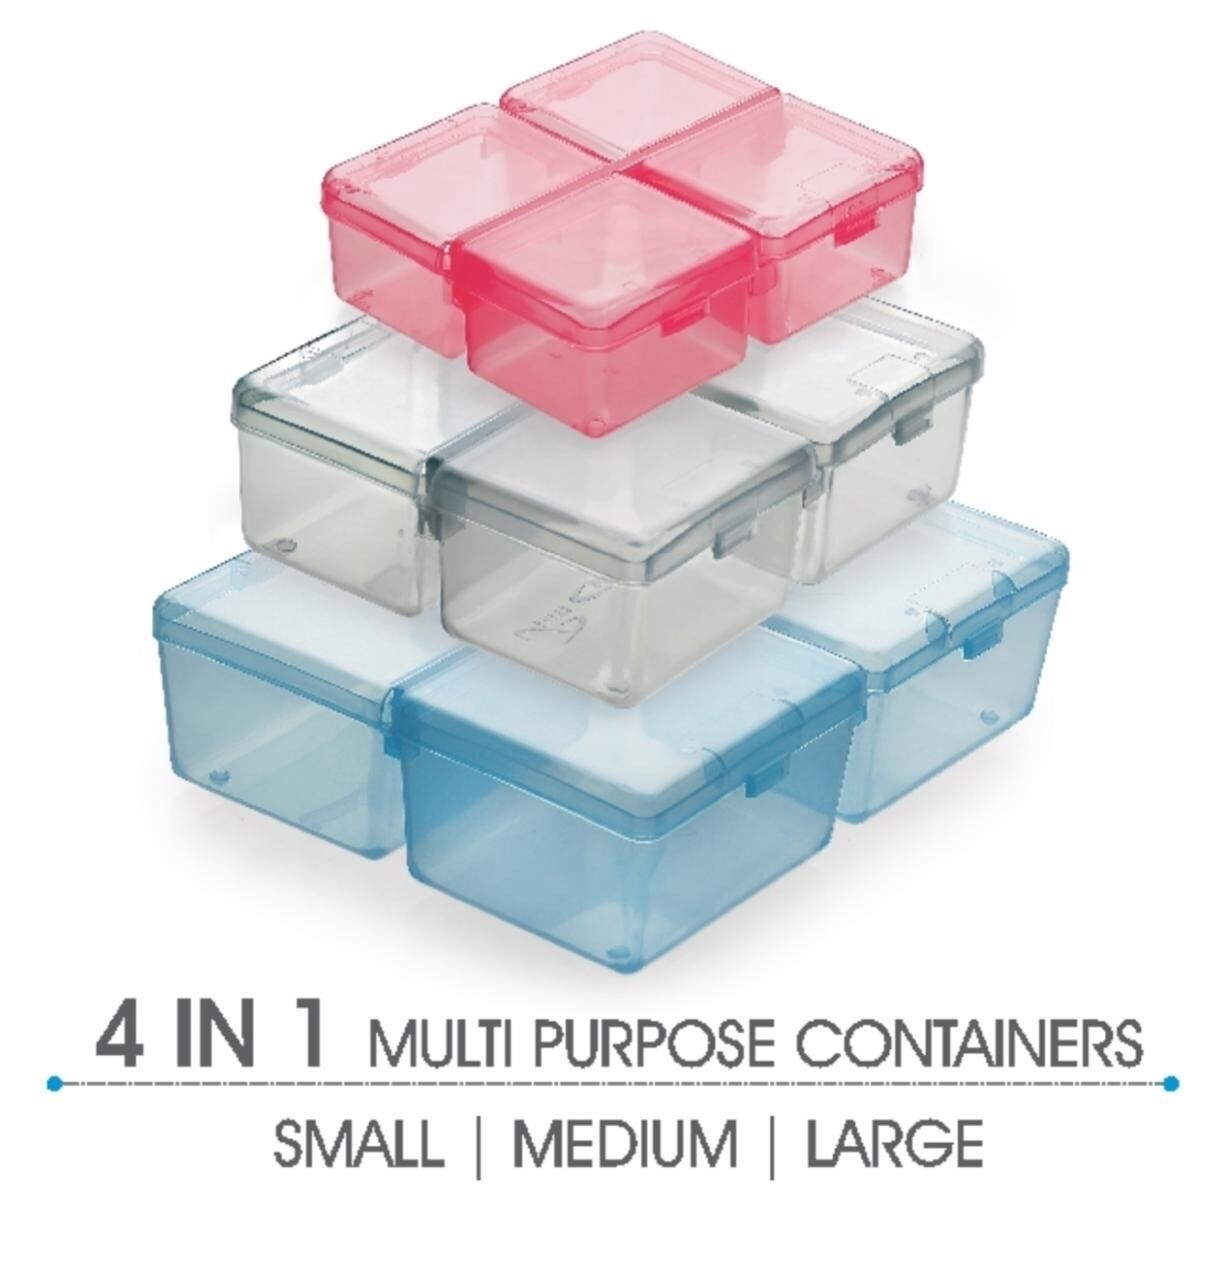 4 In 1 Multipurpose Containers (Small)